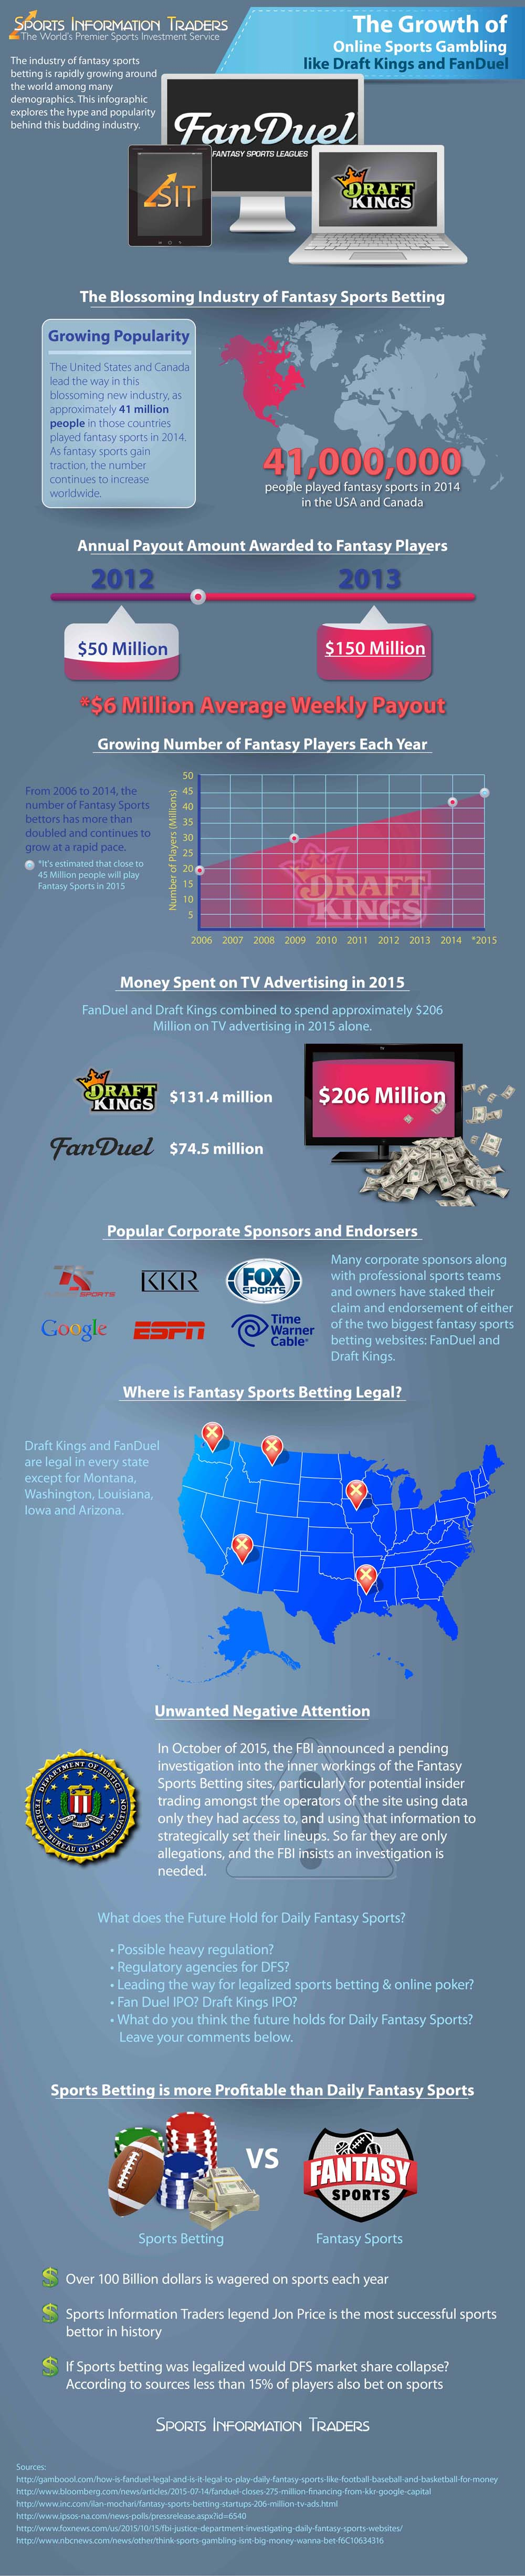 FanDuel vs. DraftKings - Daily Fantasy Sports by The Numbers